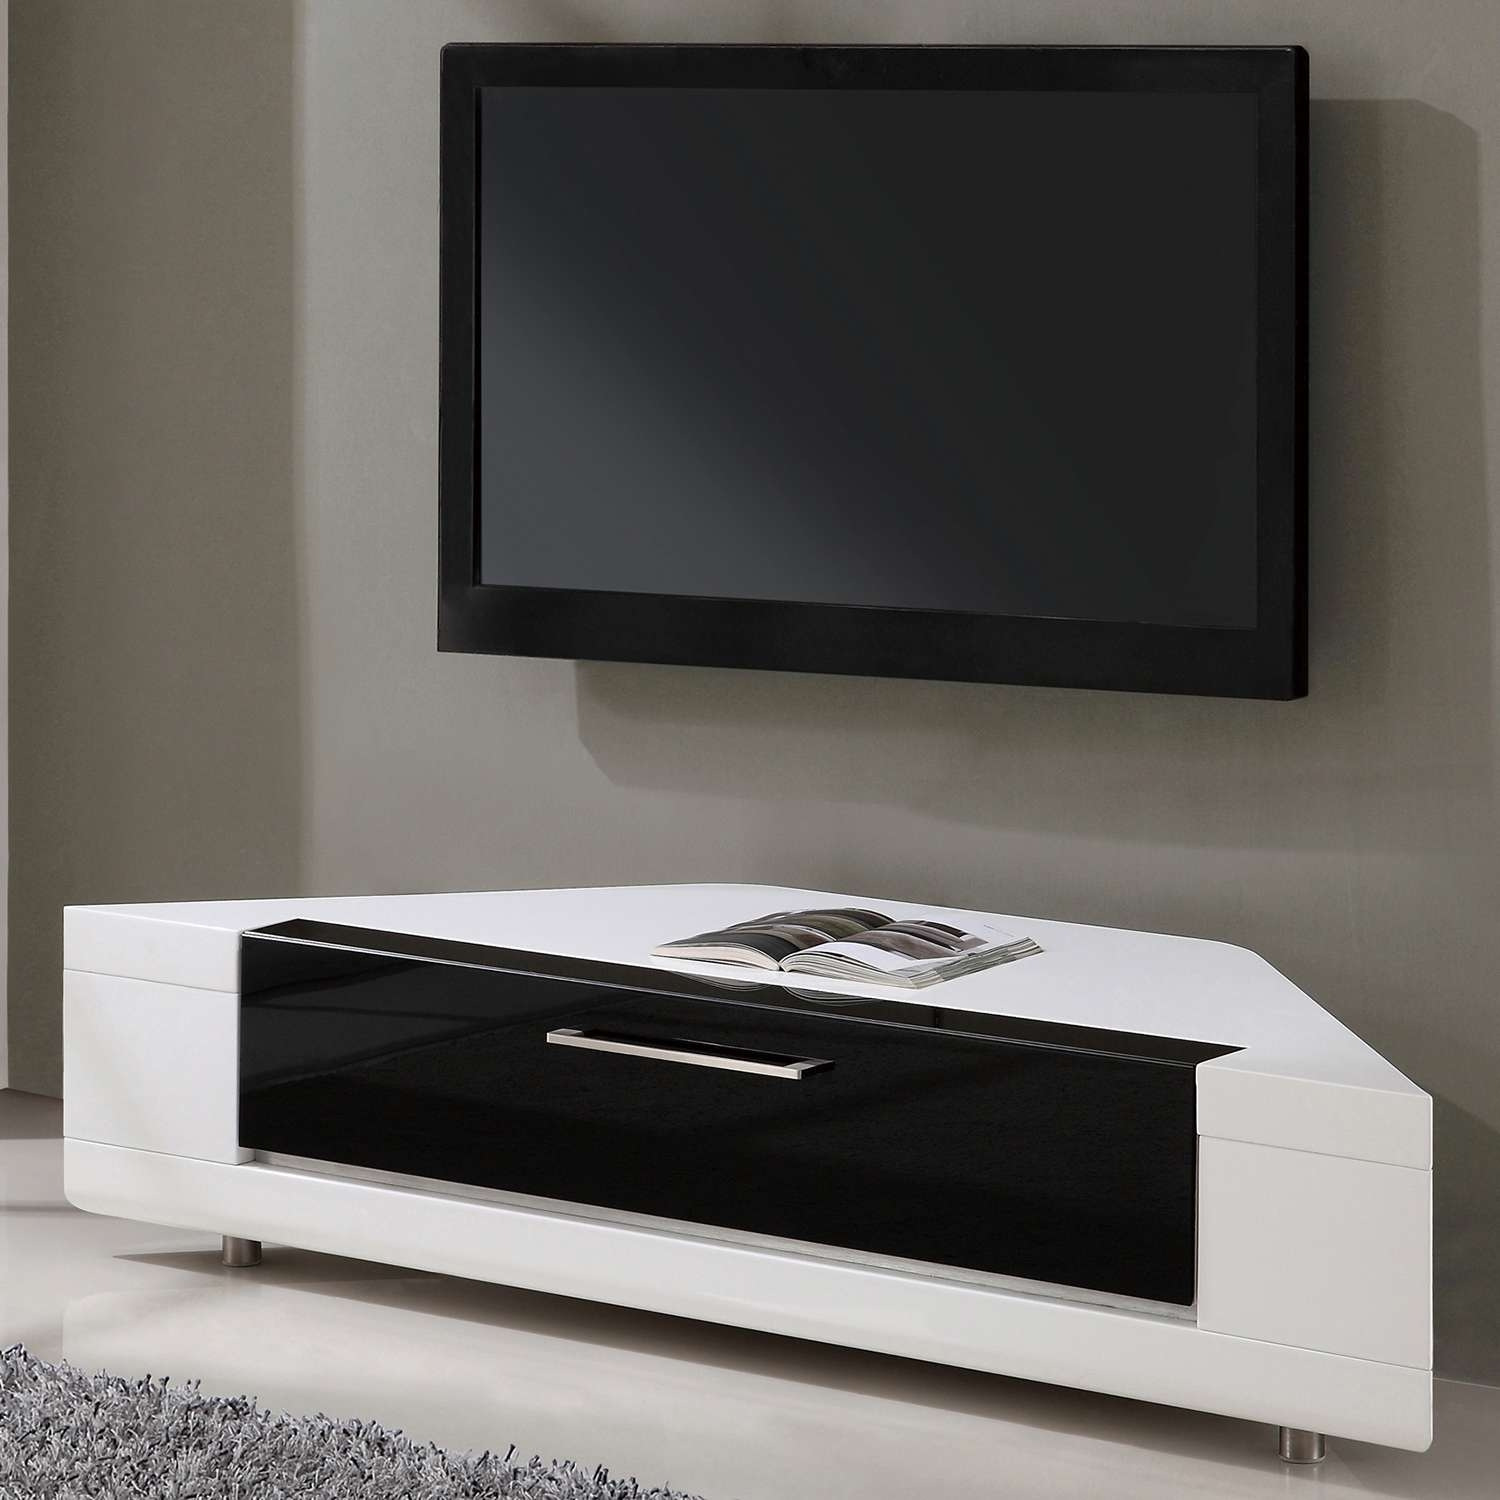 """B Modern Bm 634 Wht Editor Remix 60"""" Corner Tv Stand In White High Intended For White High Gloss Corner Tv Stands (View 2 of 20)"""